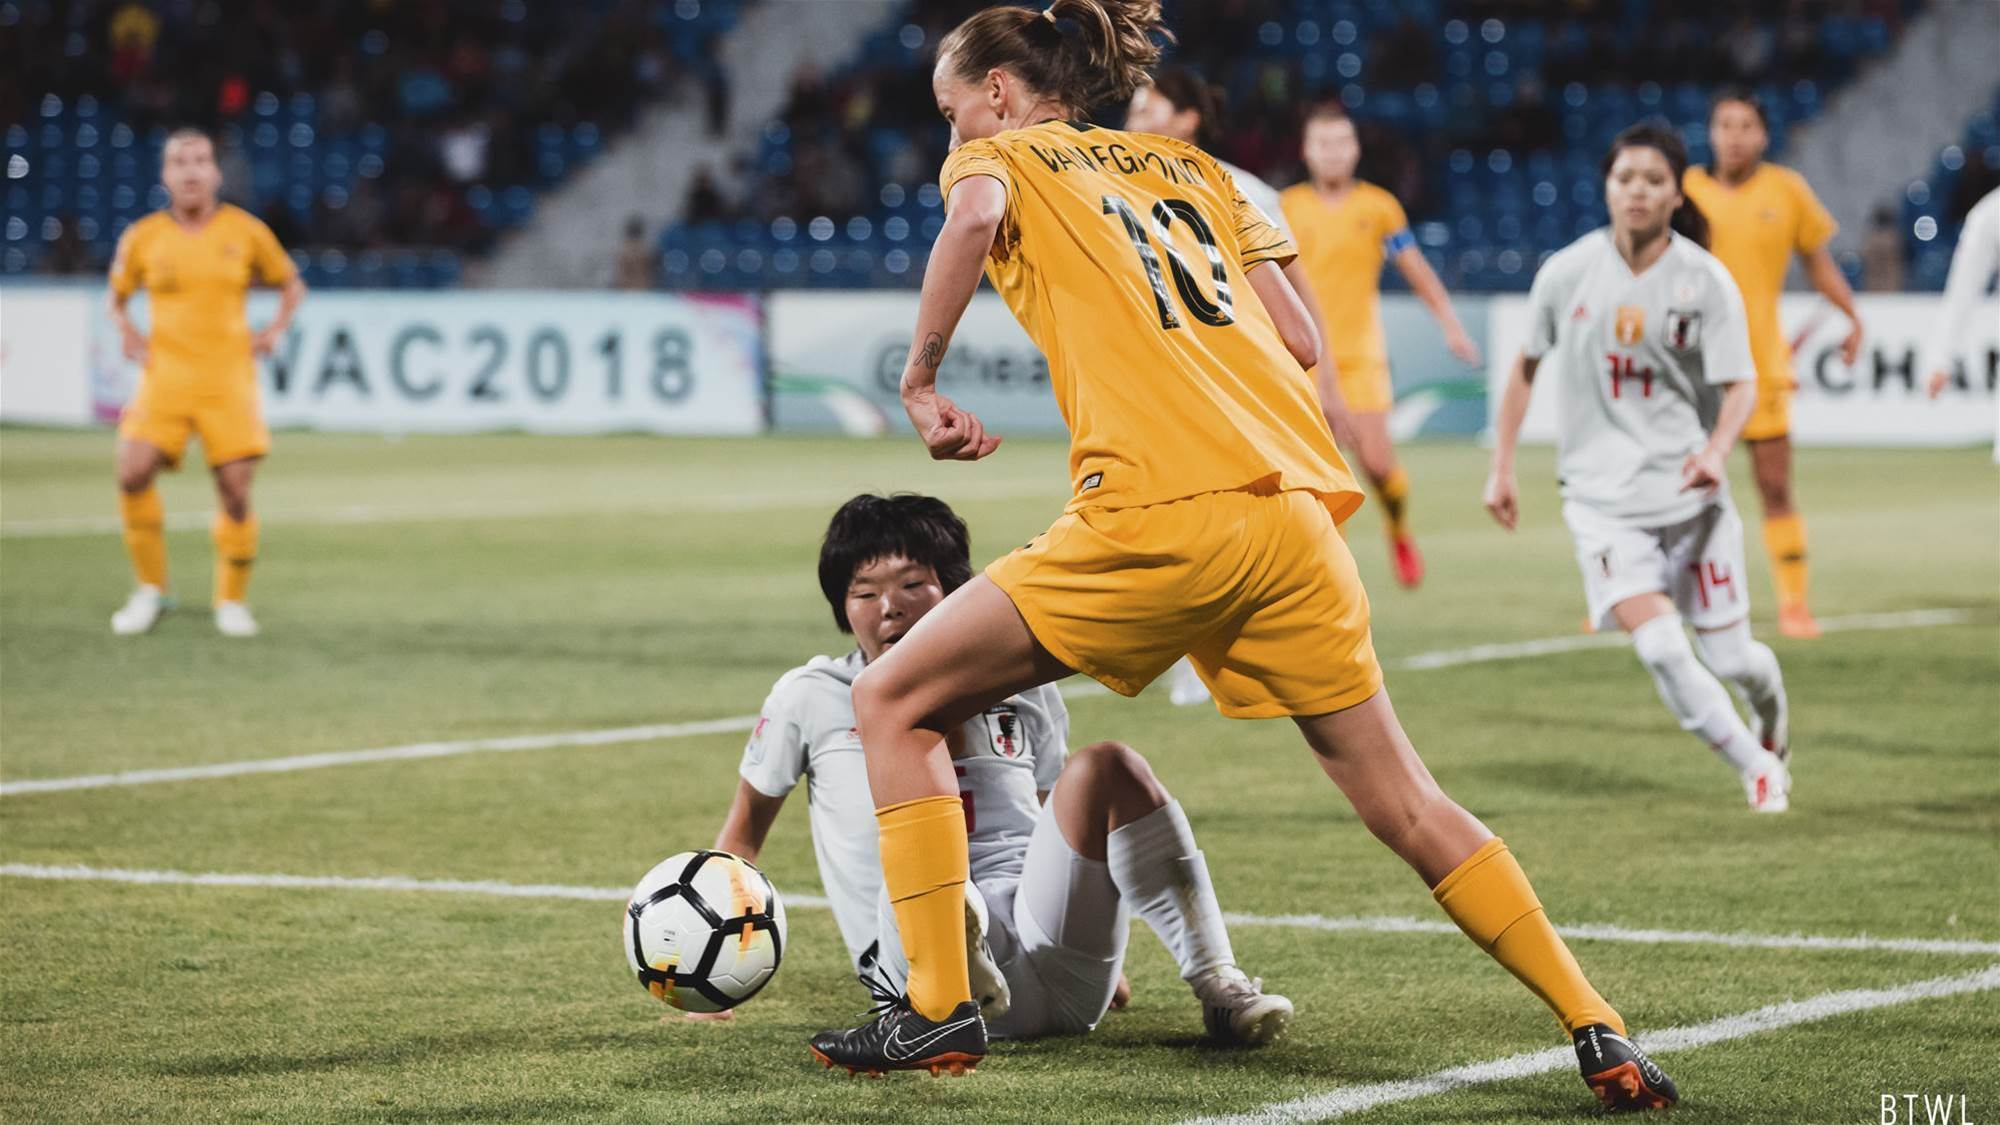 Catley: It's the story of our tournament